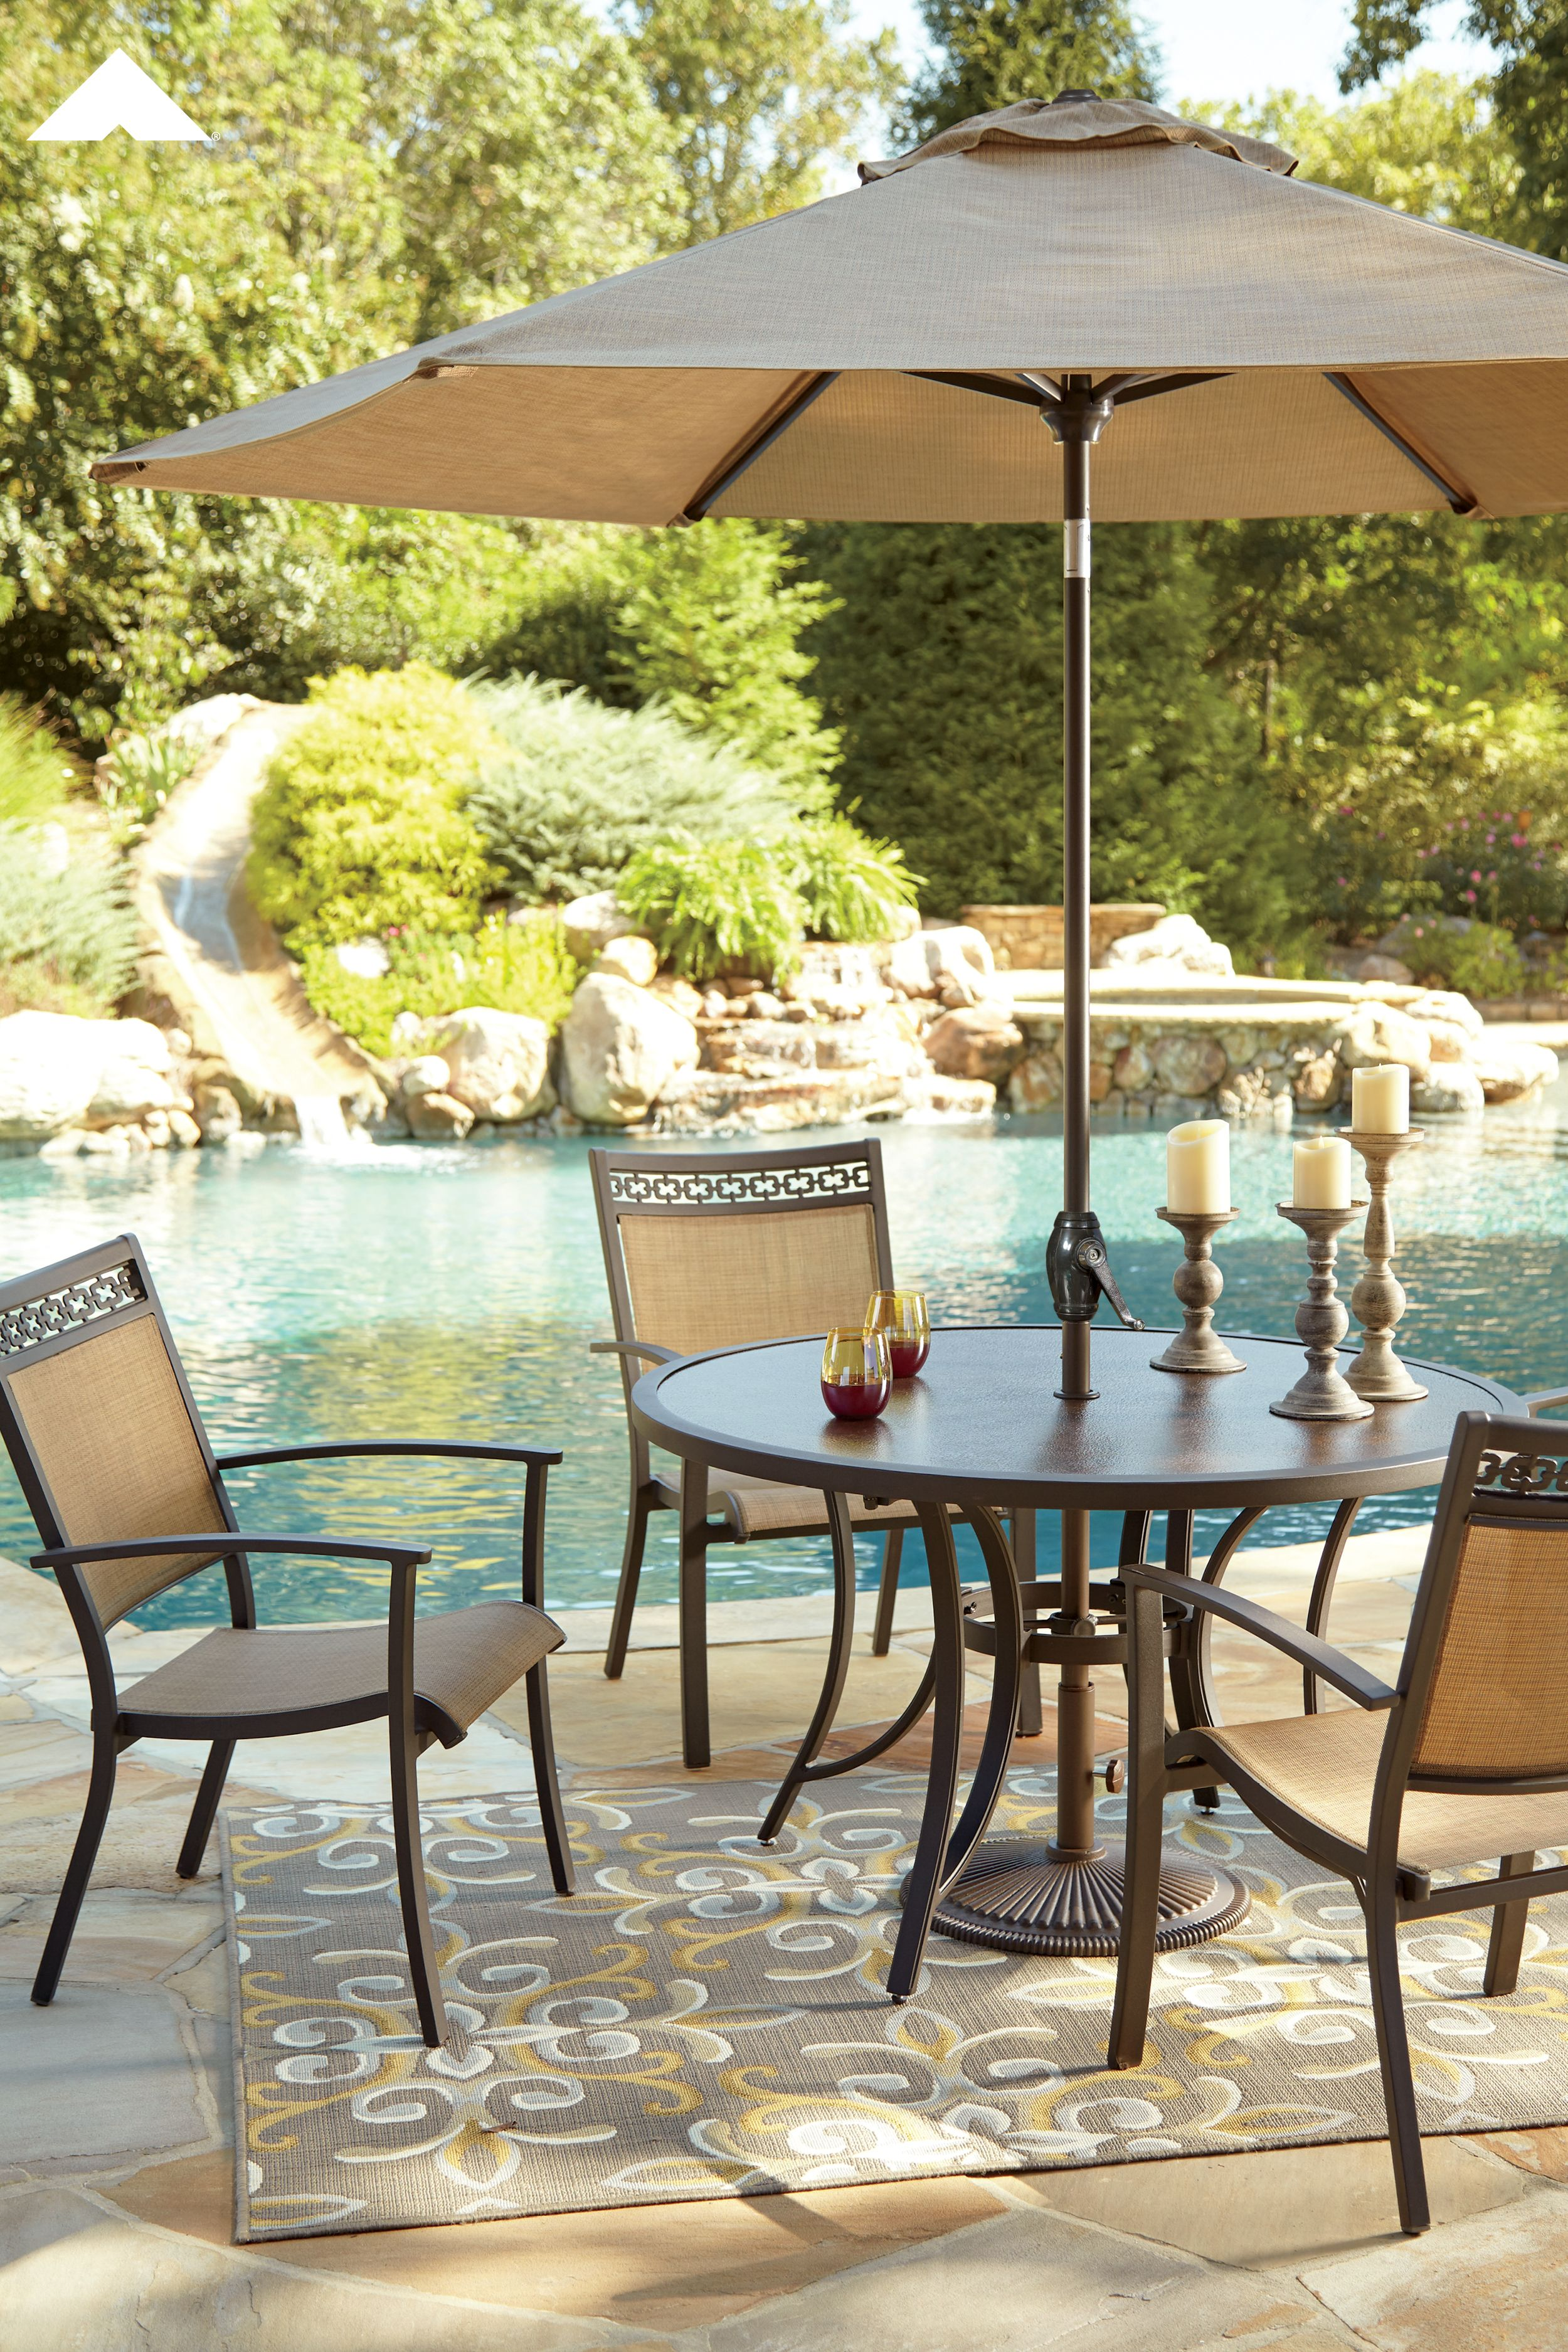 Carmadelia Tan Brown Round Dining Table with Umbrella